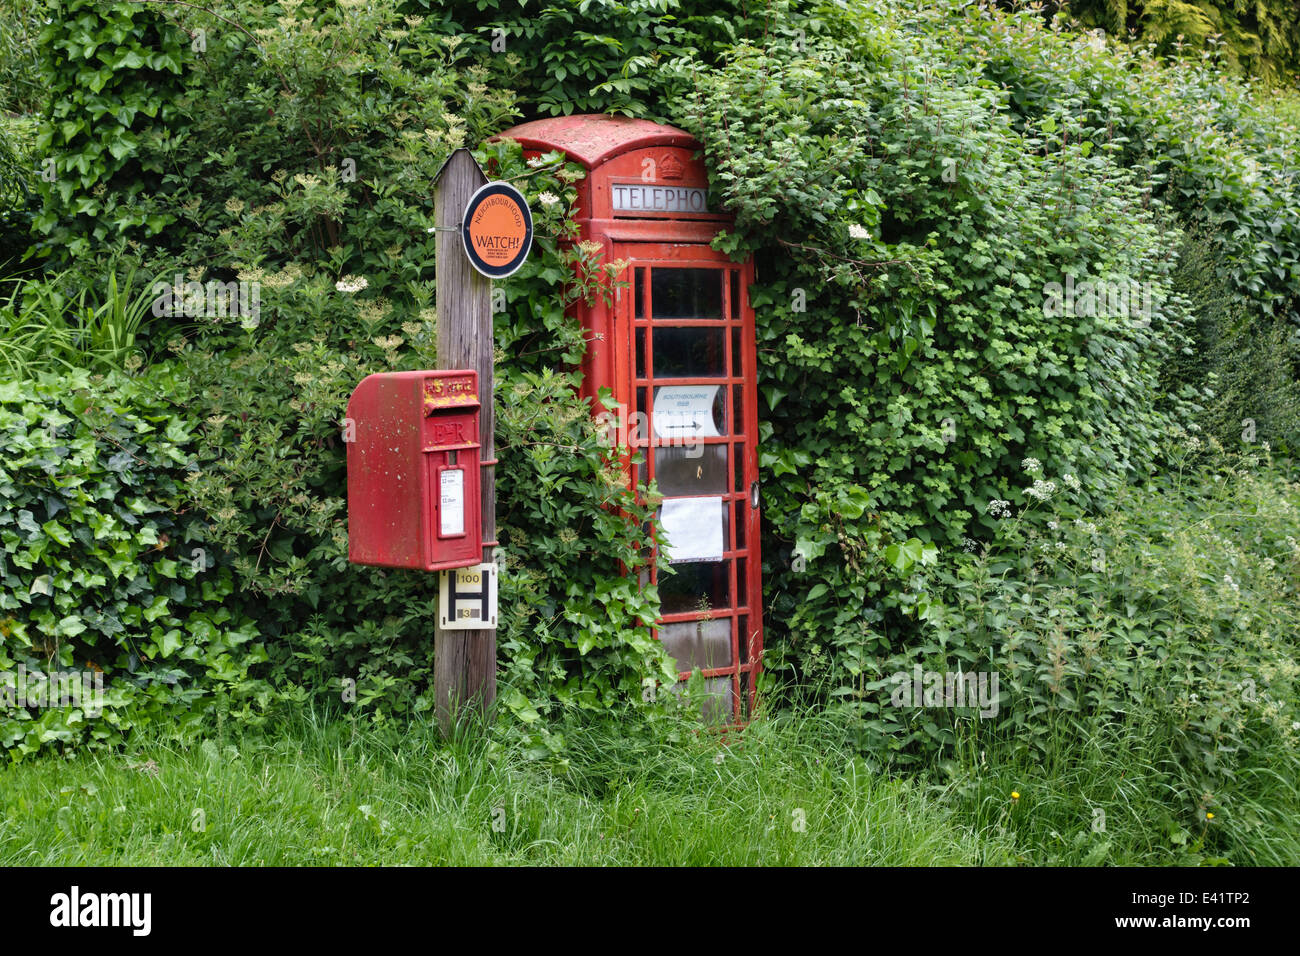 An old telephone kiosk in Herefordshire, UK, almost lost in the overgrown hedge, with a Royal Mail postbox - Stock Image